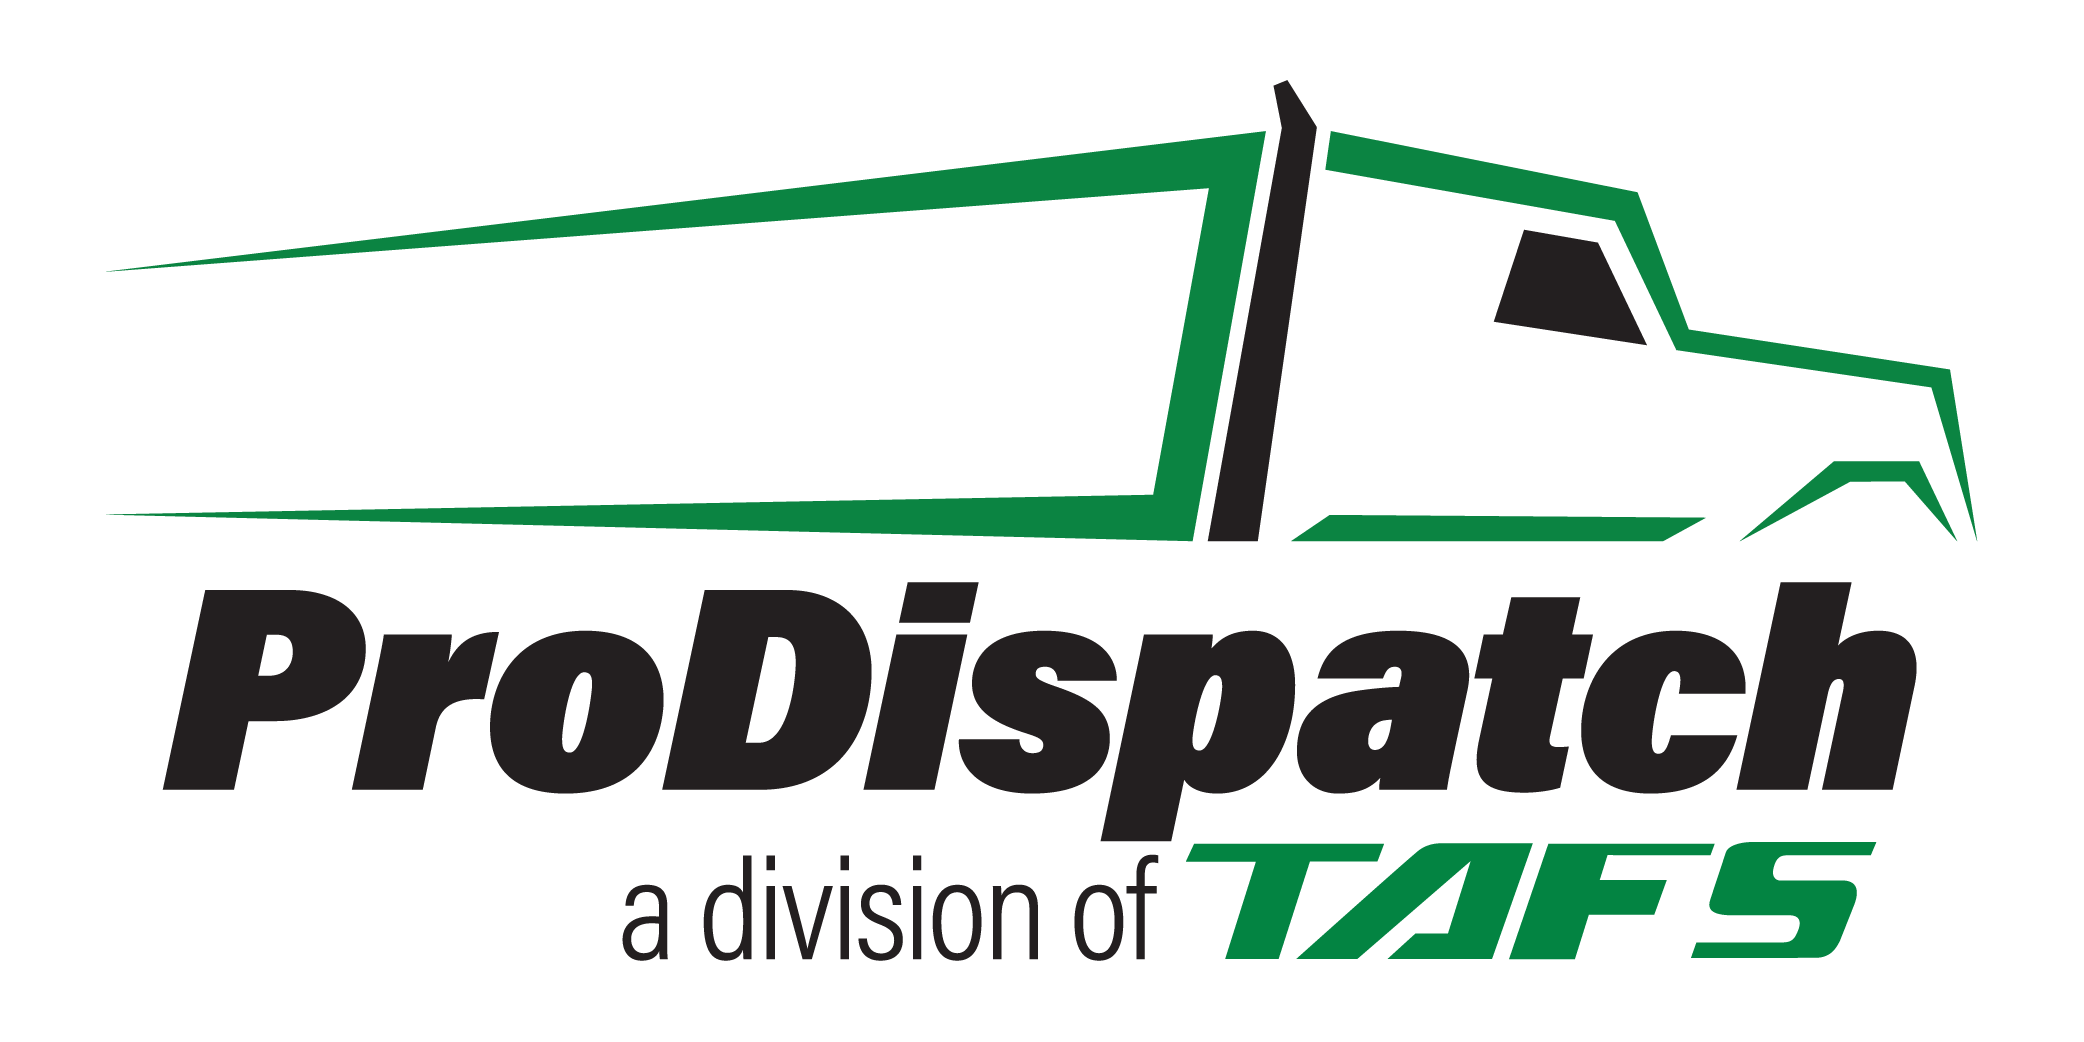 Freight Dispatcher